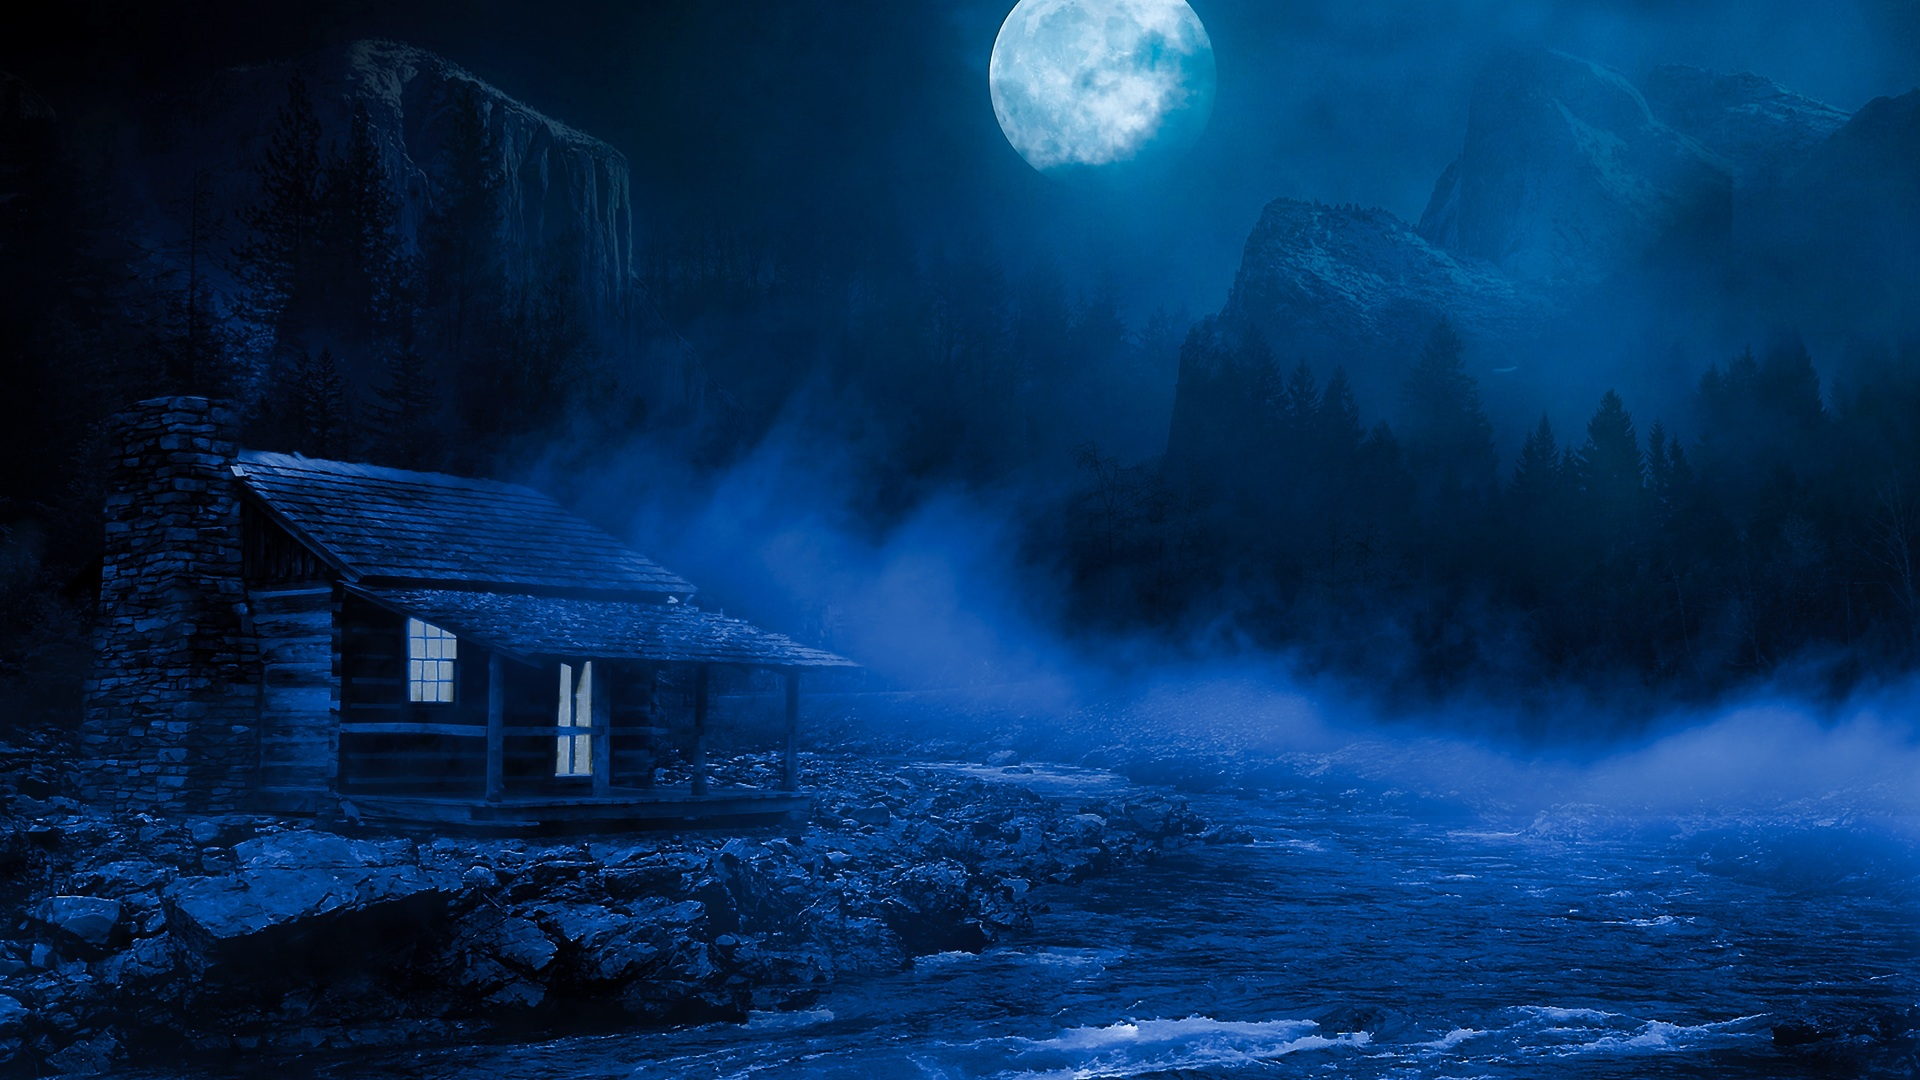 Cool Wallpaper Night House - house-night-full-moon-fantasy-lake-flowing-on-side-5k-qo-1920x1080  Graphic-231289.jpg